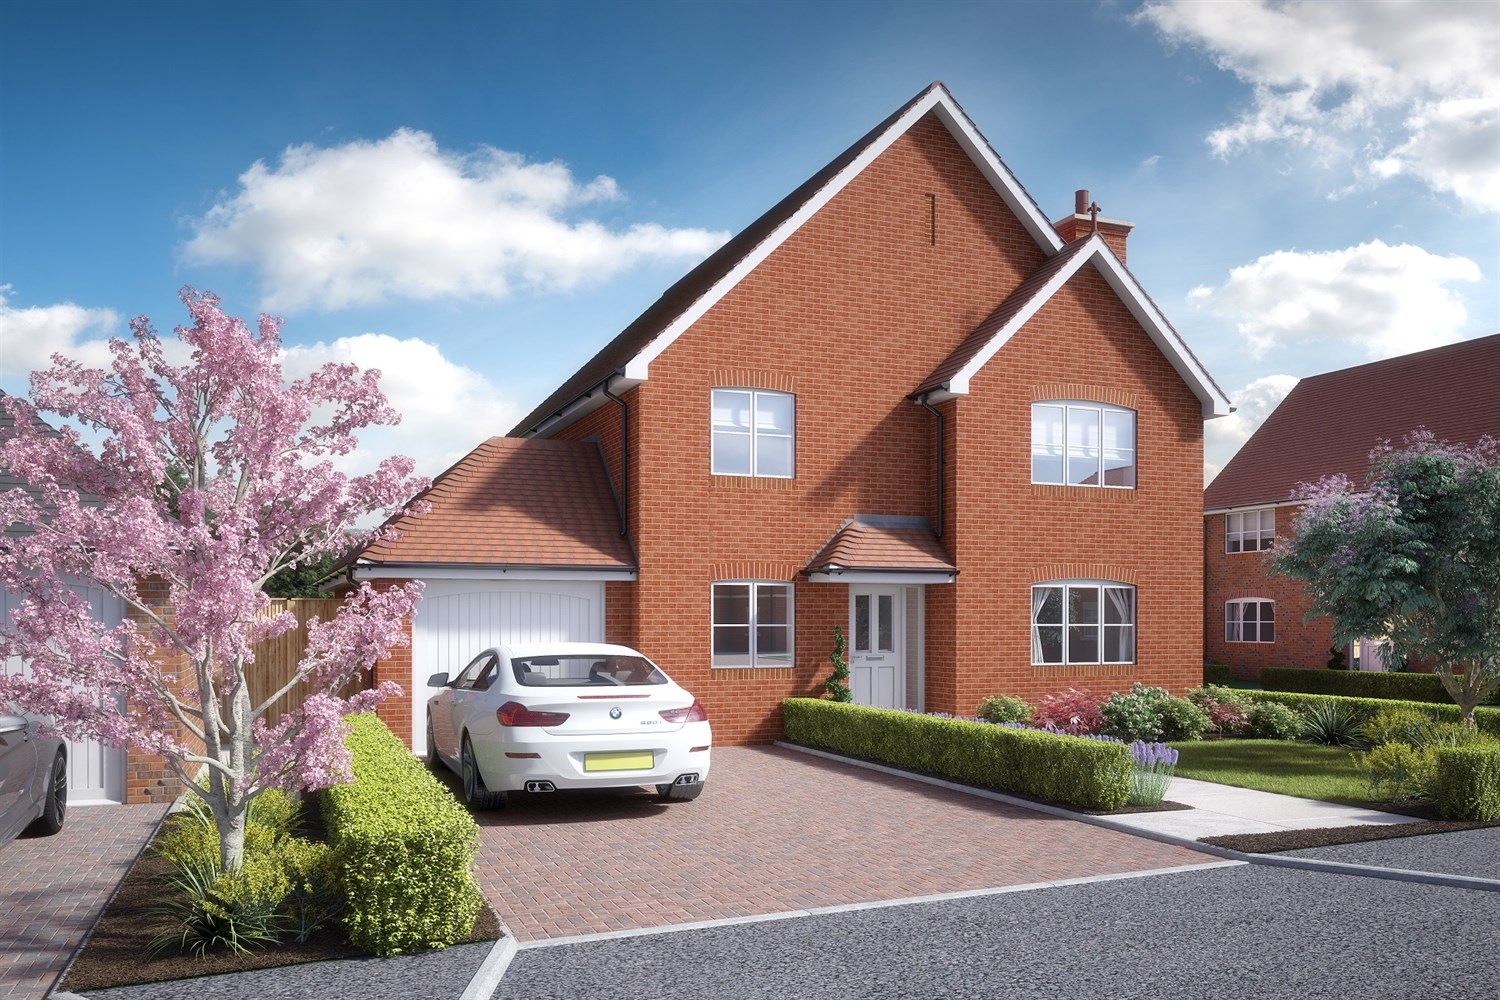 The Orchid at Nursery Gardens - 4 bed detached, Hurst, RG10 0DX